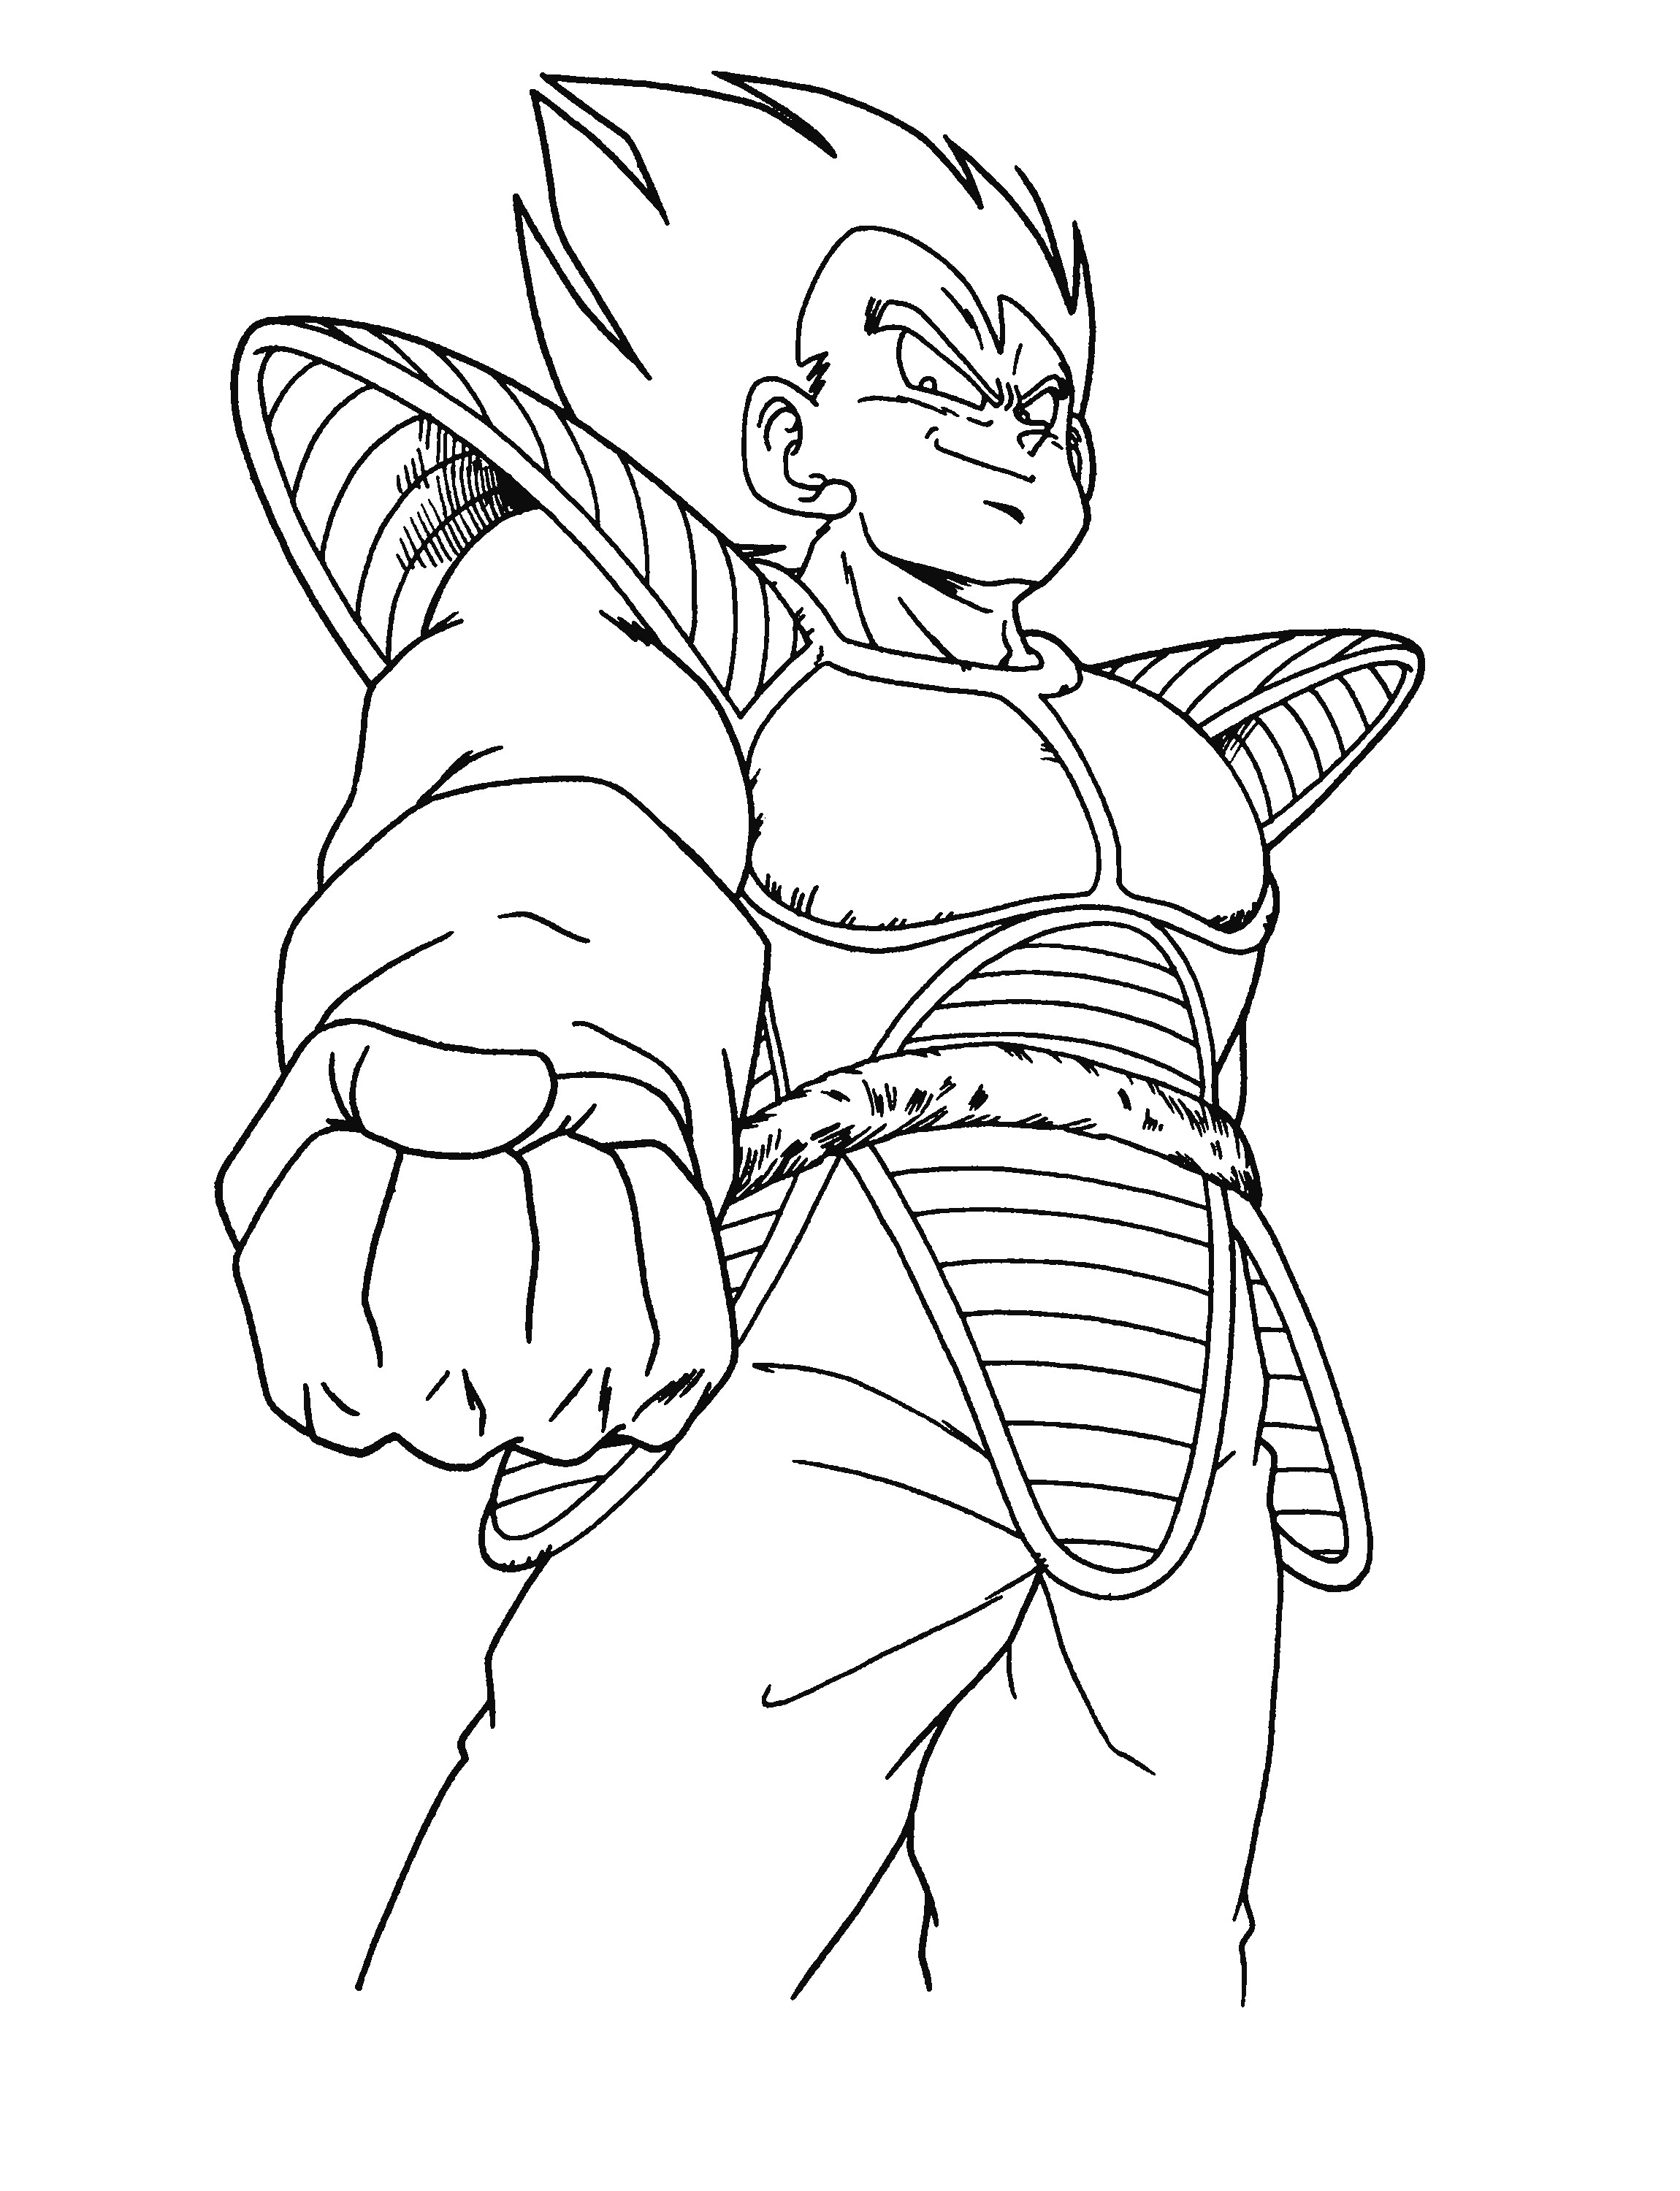 dragon ball z coloring pages Collection-Dragon Ball Z Coloring Pages Ve A Dragon Ball Z Coloring Pages 16f 8-b